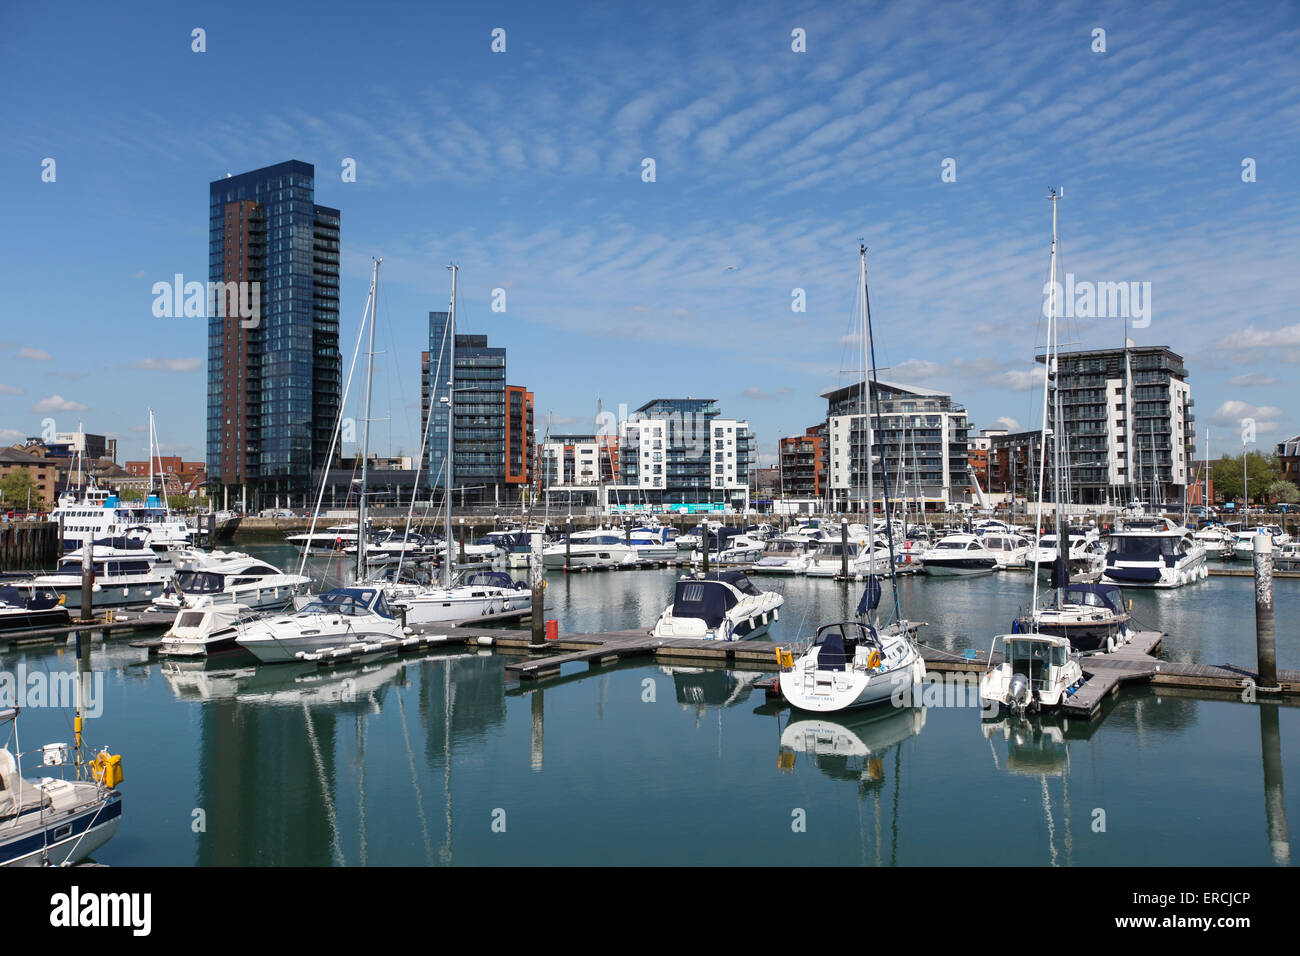 Ocean Village Marina Southampton including the new Admiral's Quay development (left of photo) - Stock Image